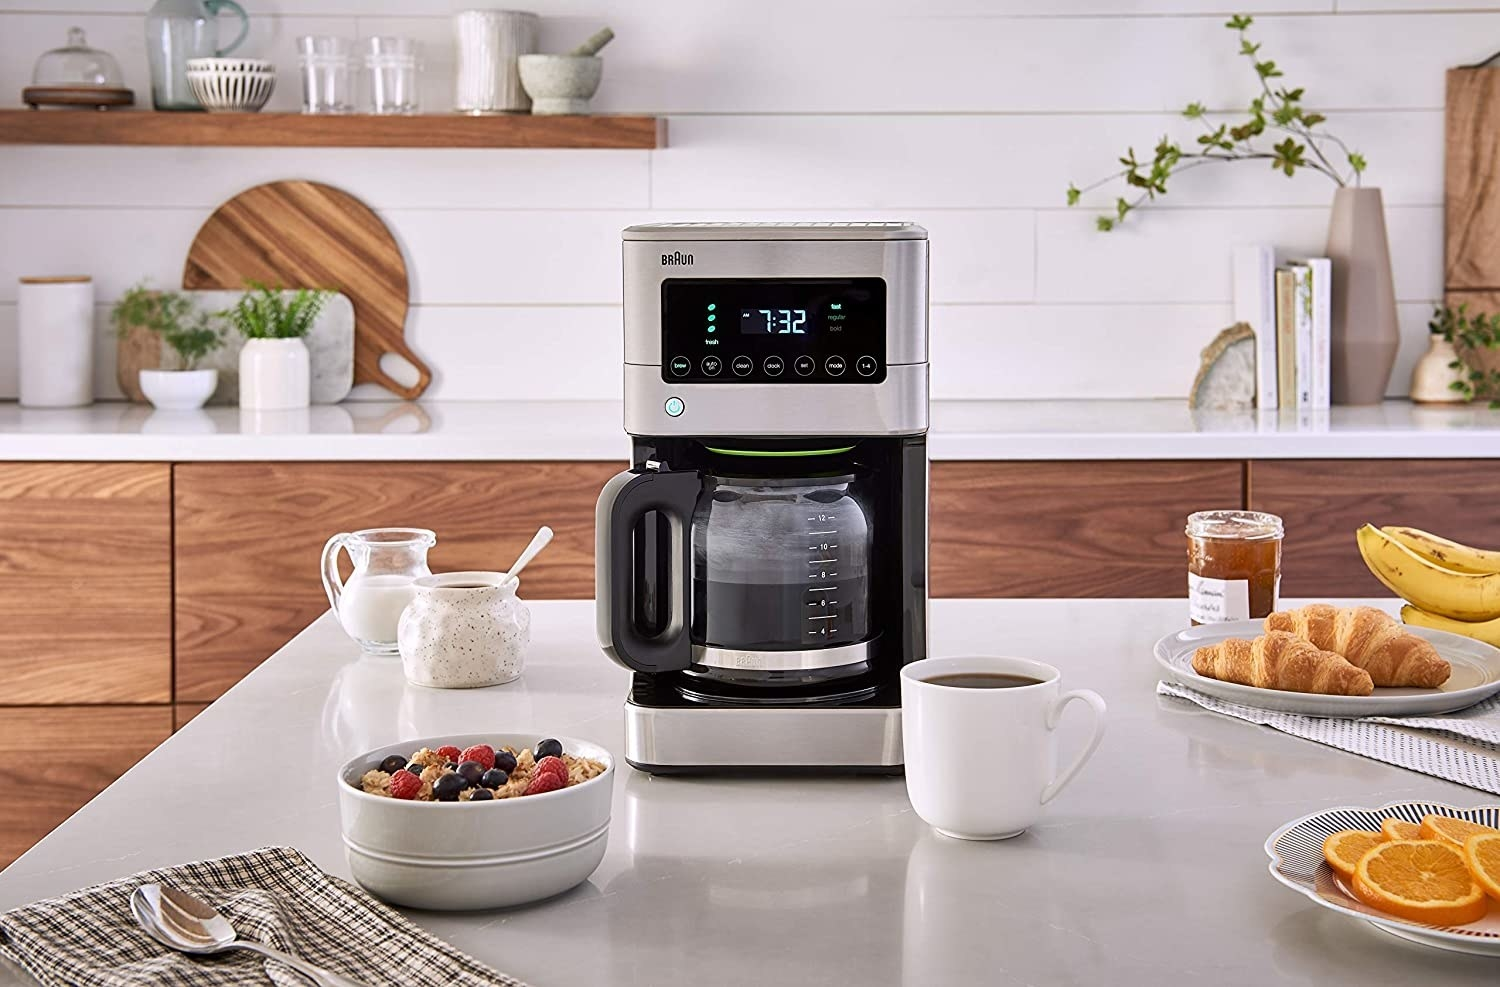 A coffee maker that's brewing coffee in a kitchen